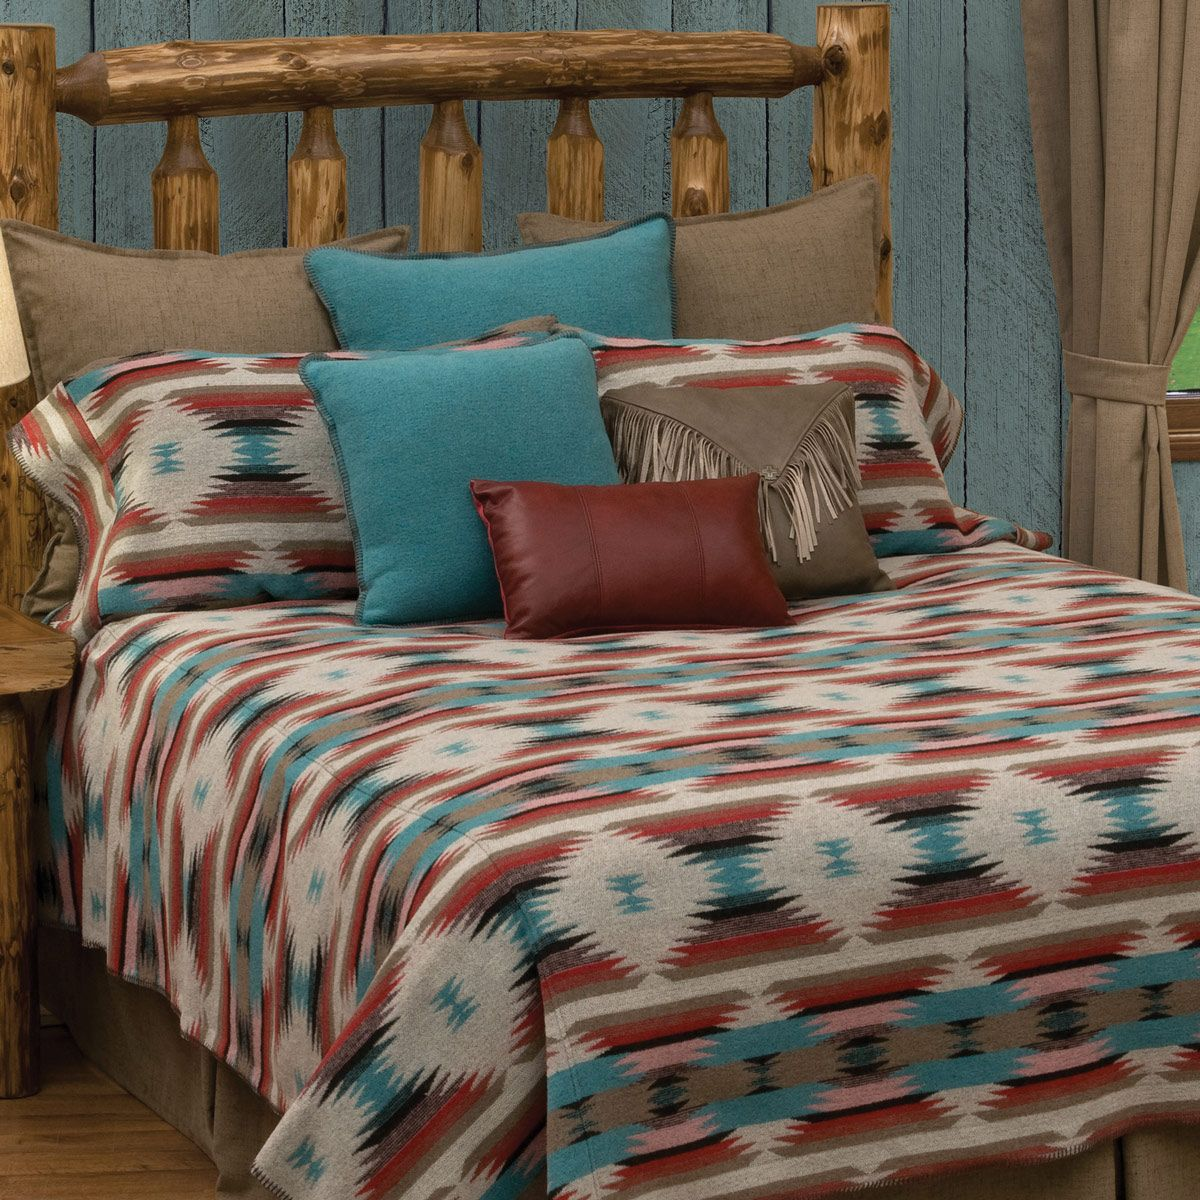 Painted Sky Value Bed Set - King